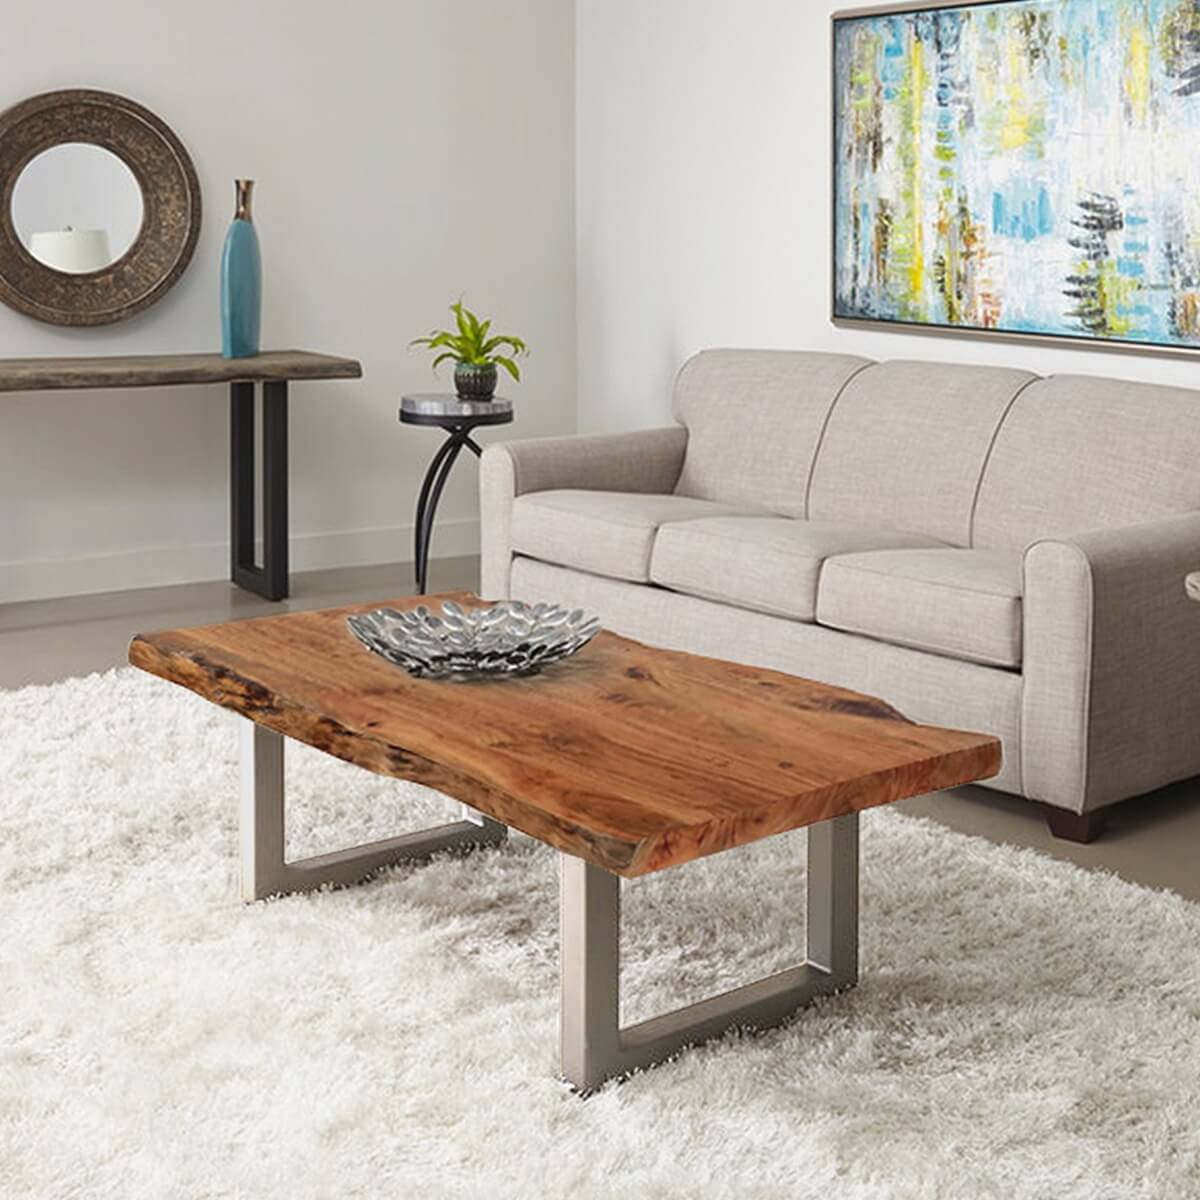 "Dining Room Stylish Natural Wood Coffee Tables Rustic: Natural Edge Acacia Wood & Steel 55"" Long Coffee Table"